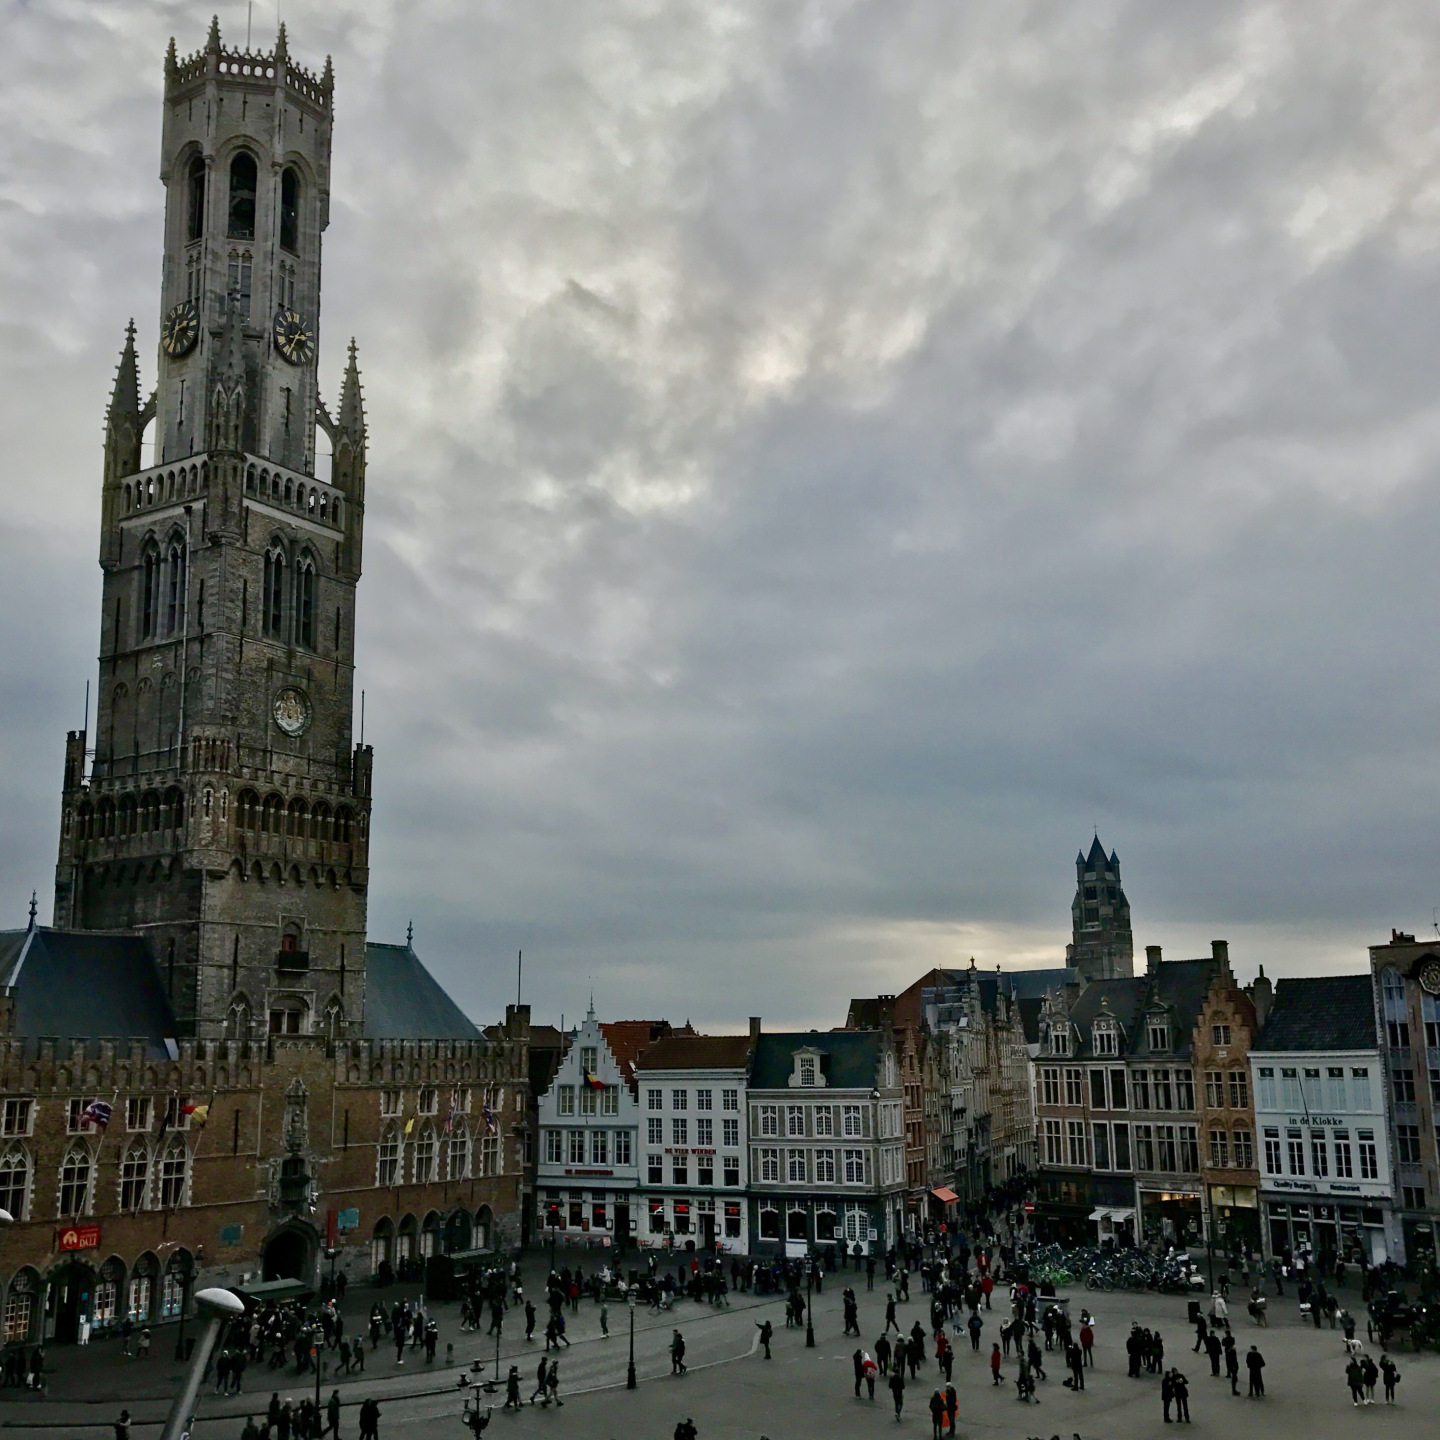 Market Square and the belfry of Bruges